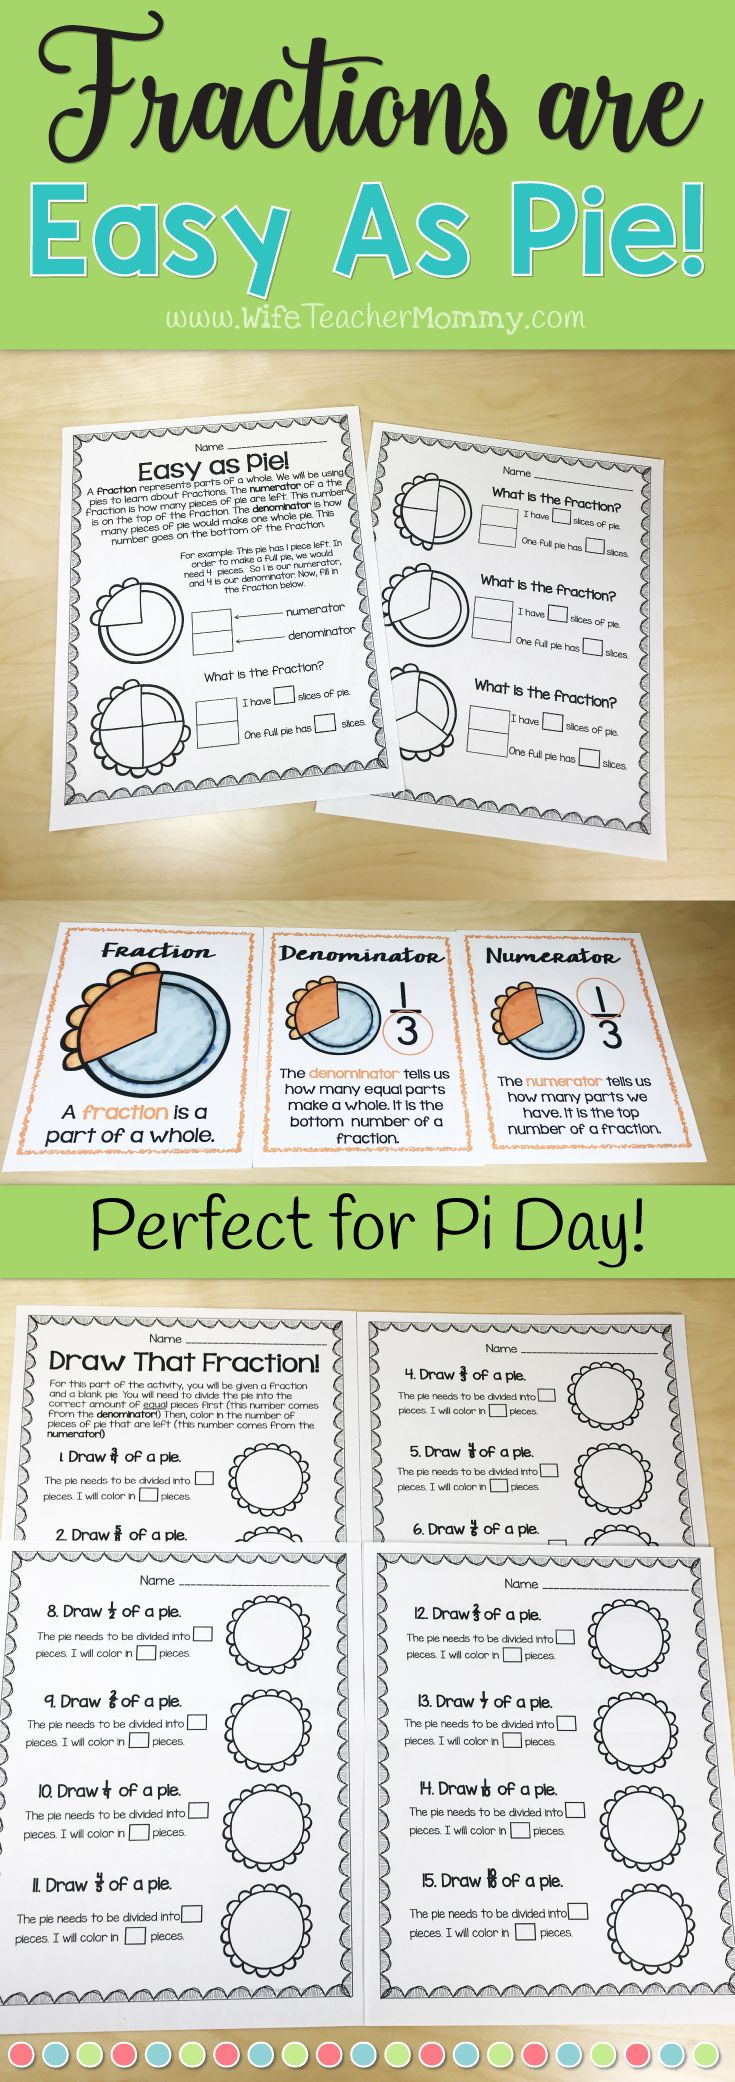 Fractions worksheets for 3rd grade and 4th grade! These can be used for Pi Day Worksheets or Thanksgiving worksheets. These aren't just your normal worksheets- but a great way to make the concept a lot more fun! Also comes with a fun mini-lesson to introduce the concept of fractions to the students. 3rd grade math worksheets, 4th grade math worksheets. Pi Day worksheets. #piday #fractions